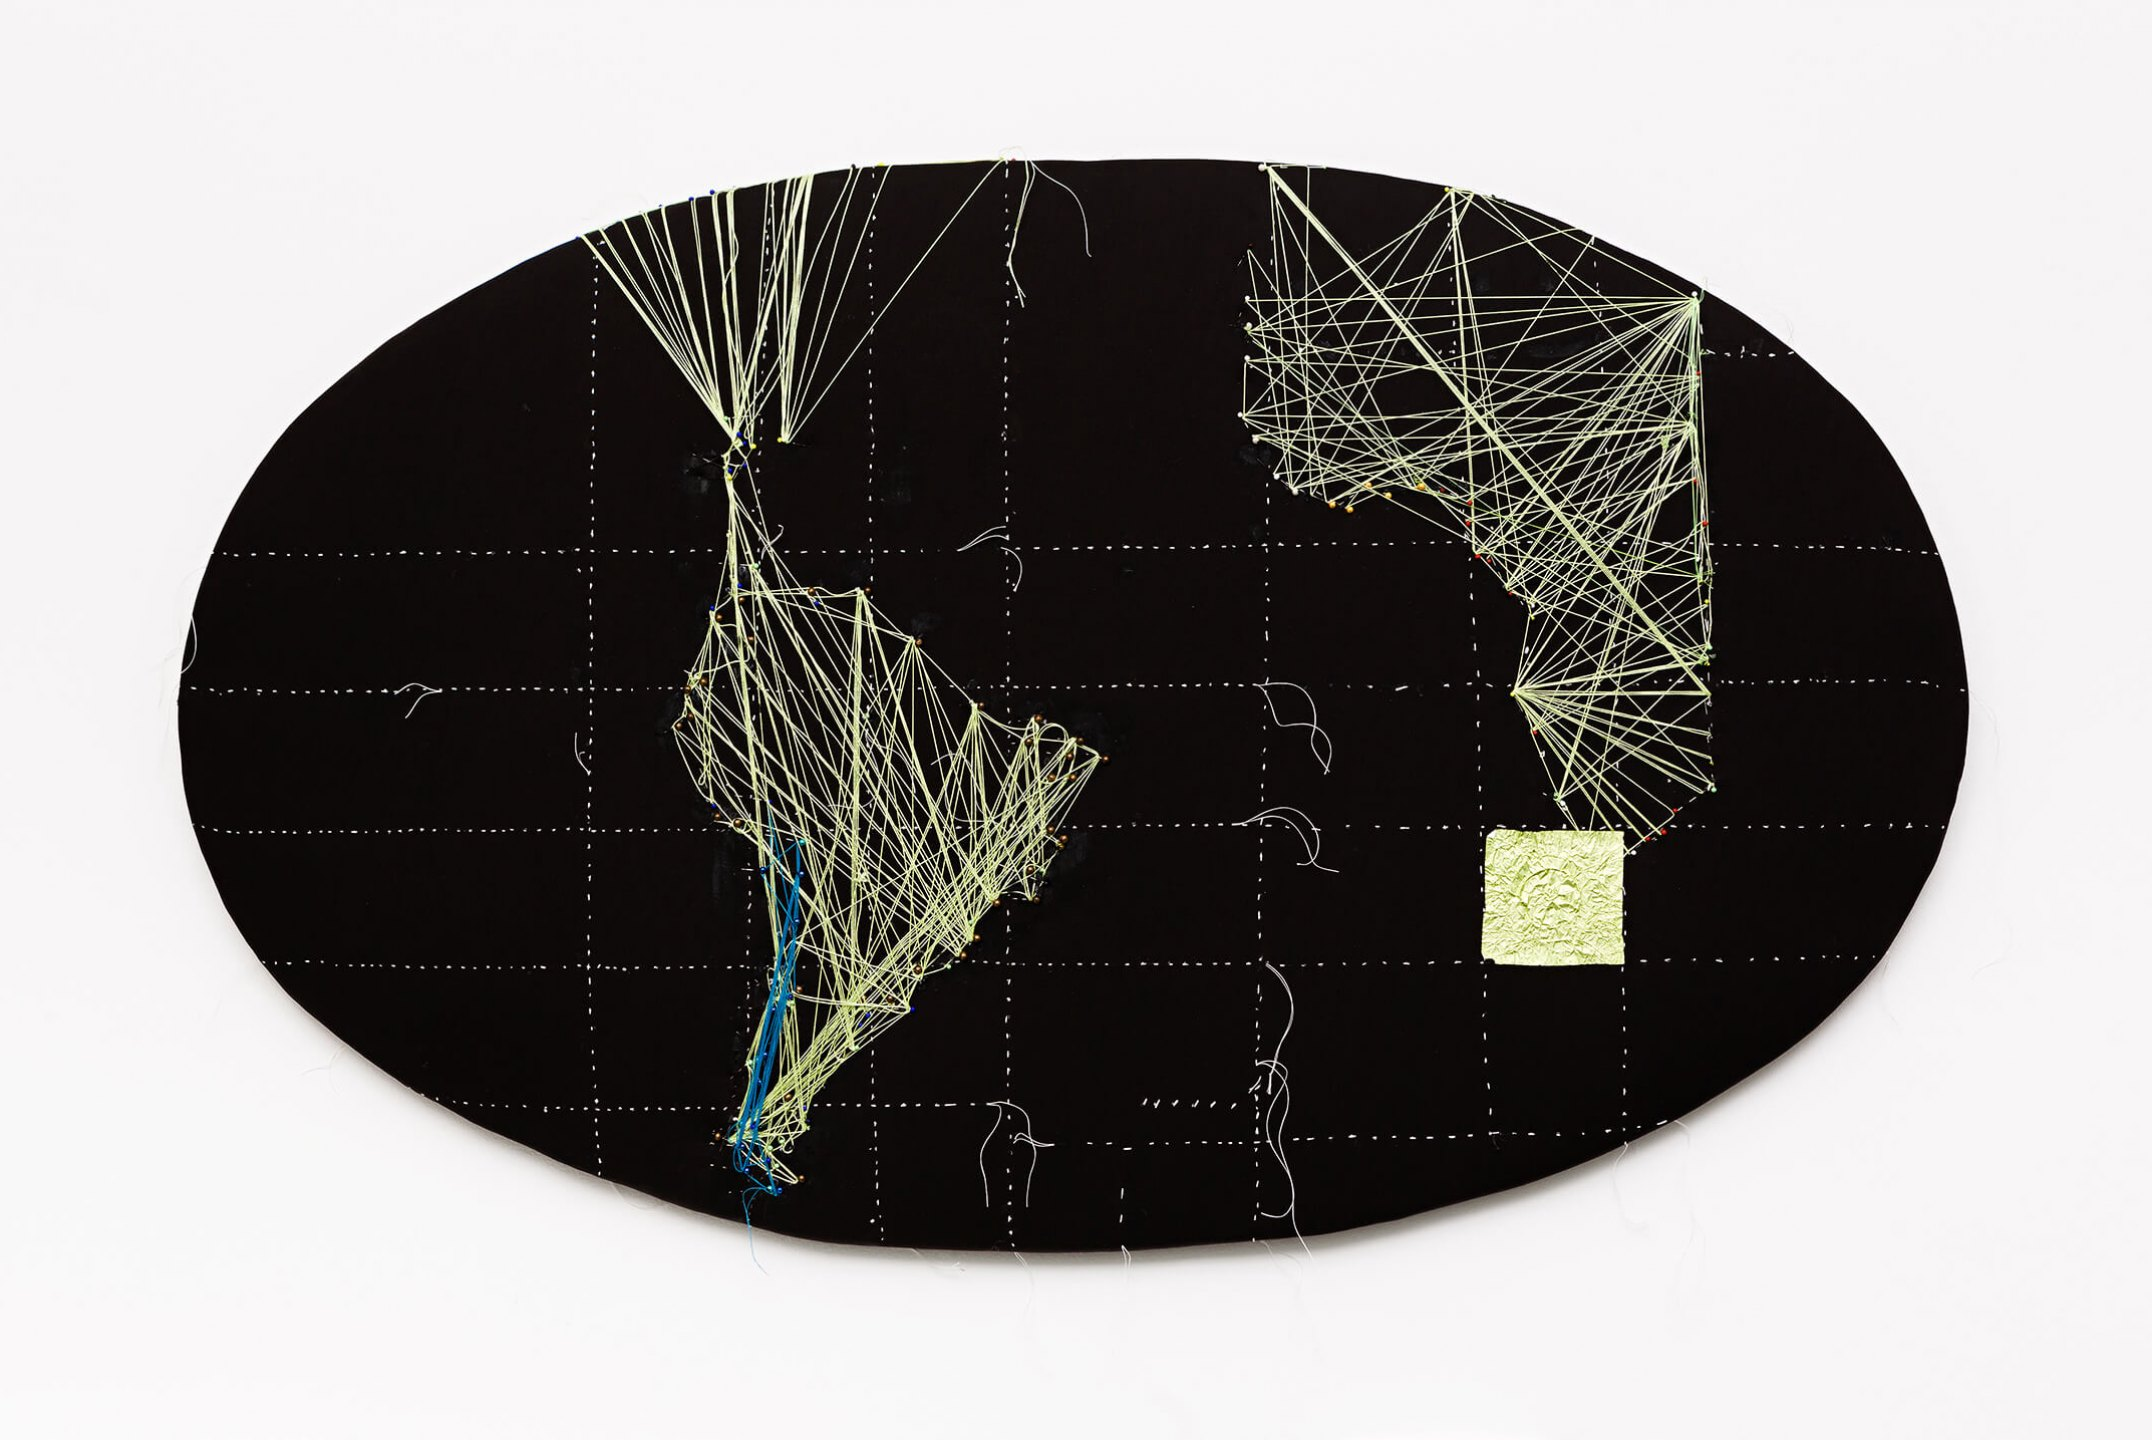 Anna Bella Geiger, <em>EW18 com mapa da Africa, from Macios series</em>, 2014, embroidery, pins, threads and collage of metal sheet on canvas, 98 × 59 cm - Mendes Wood DM